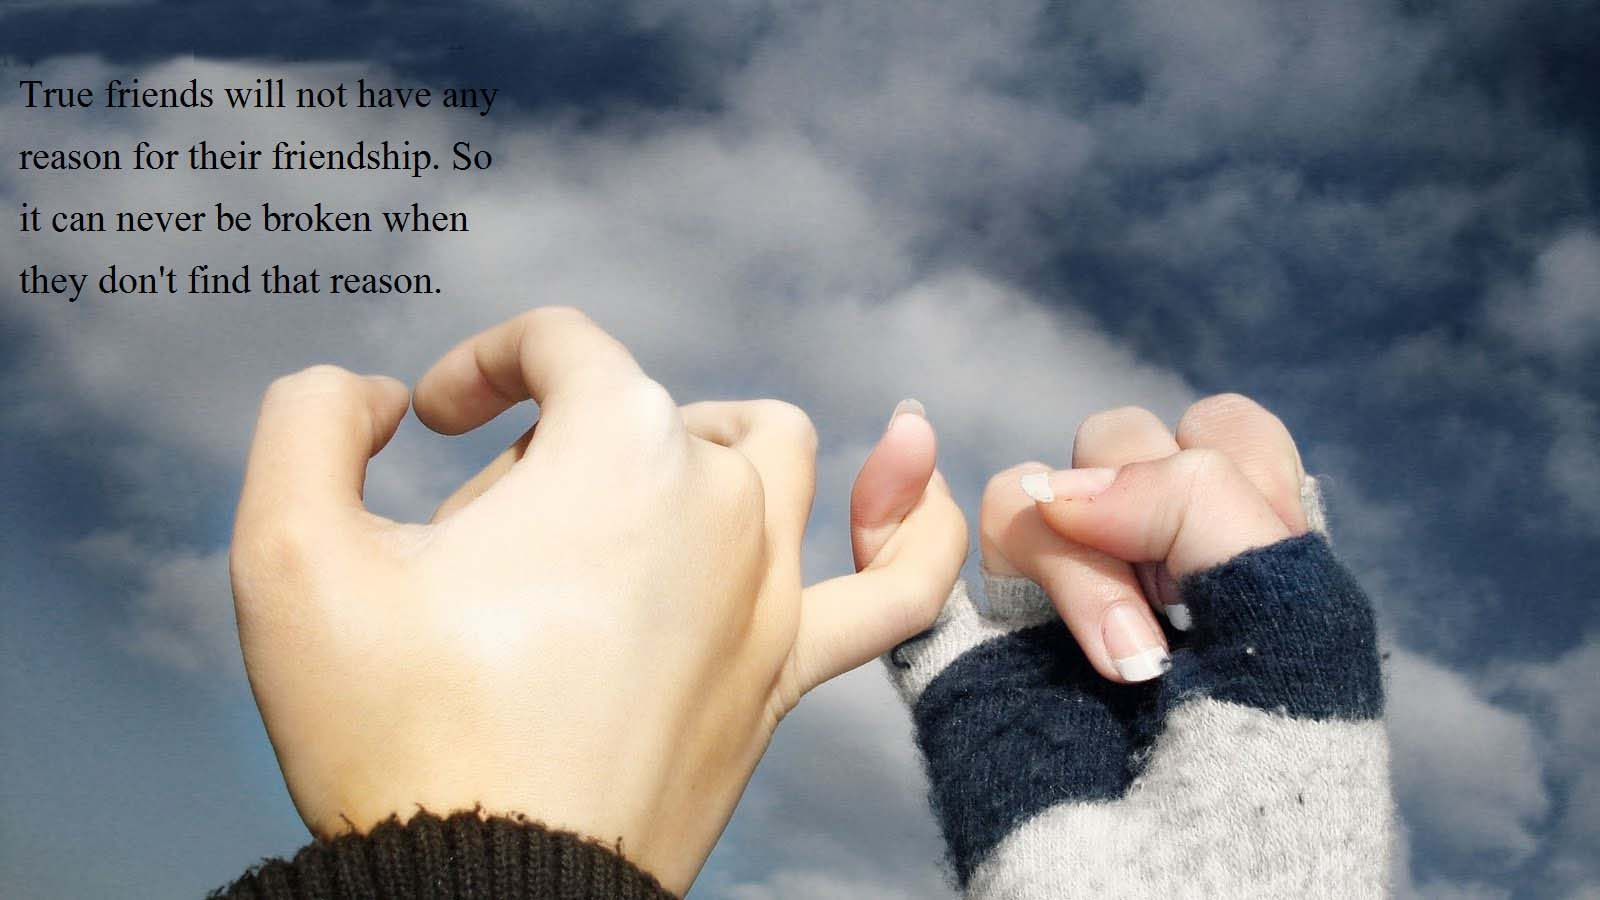 Download Wallpapers Of Friendship And Love